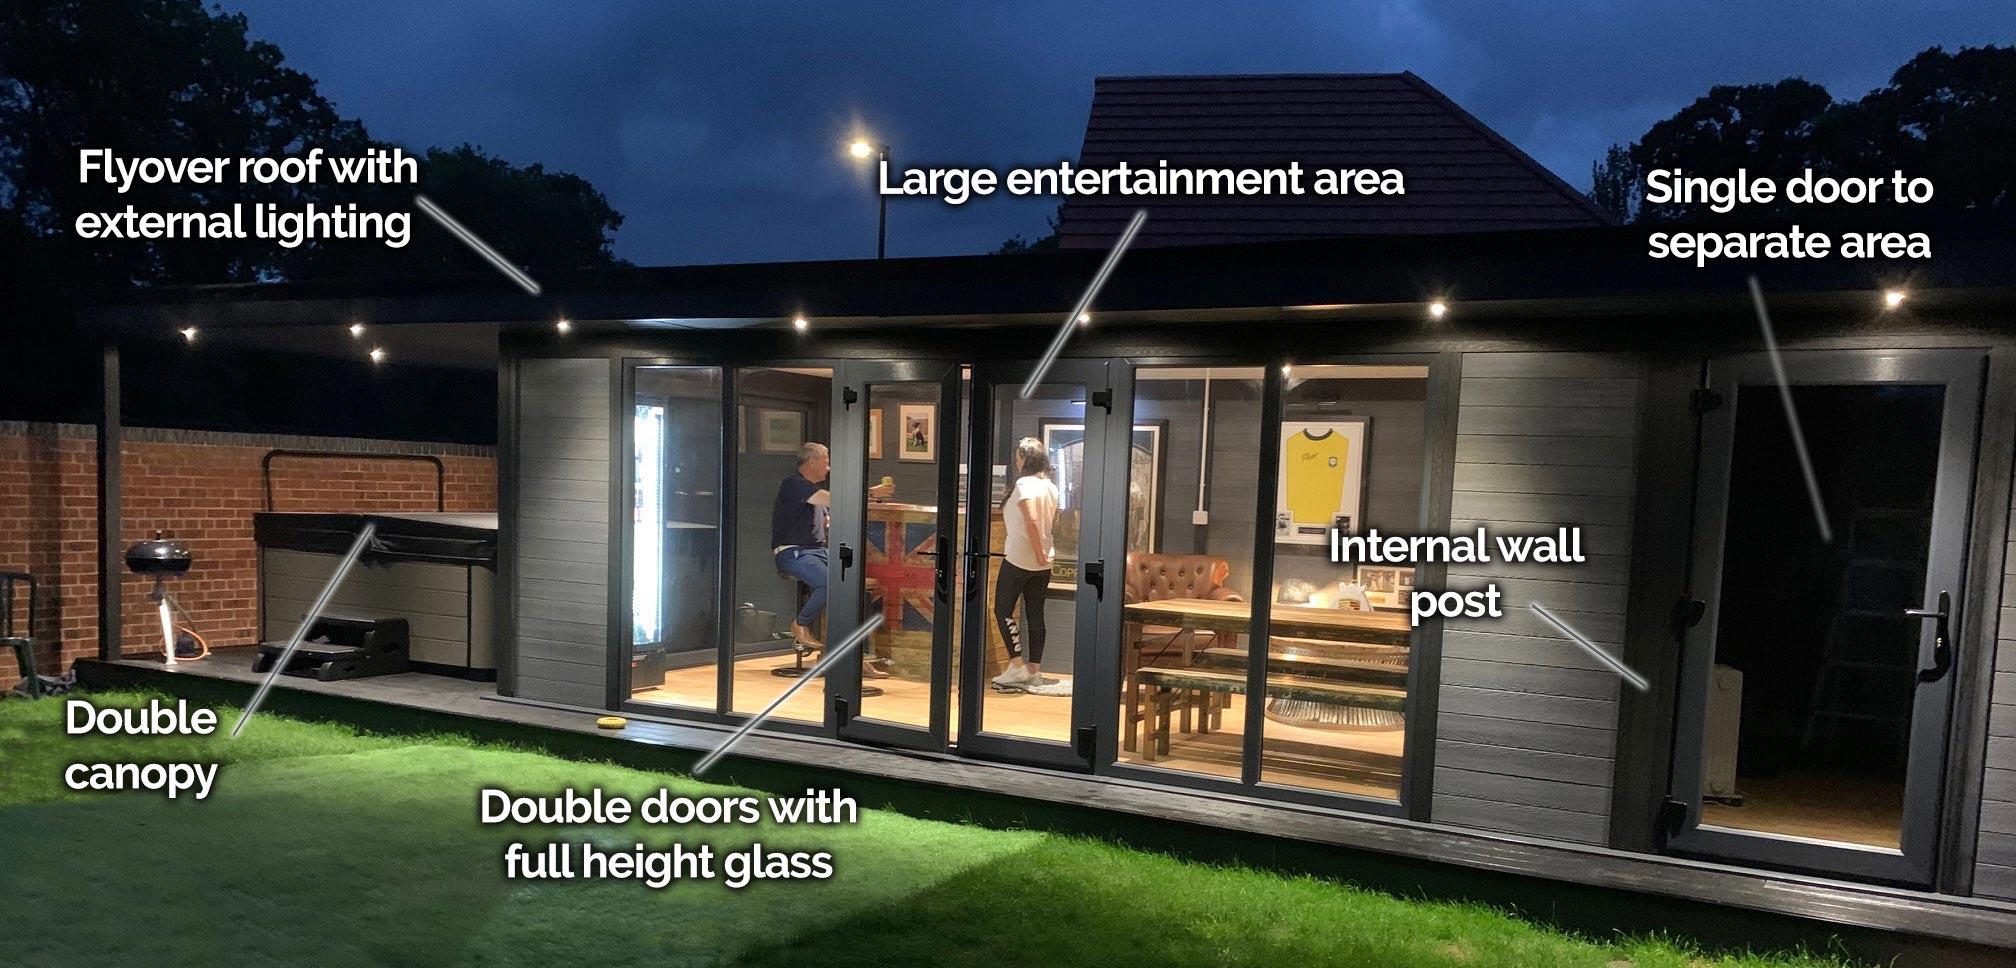 large garden room entertainment area with double canopy separate room